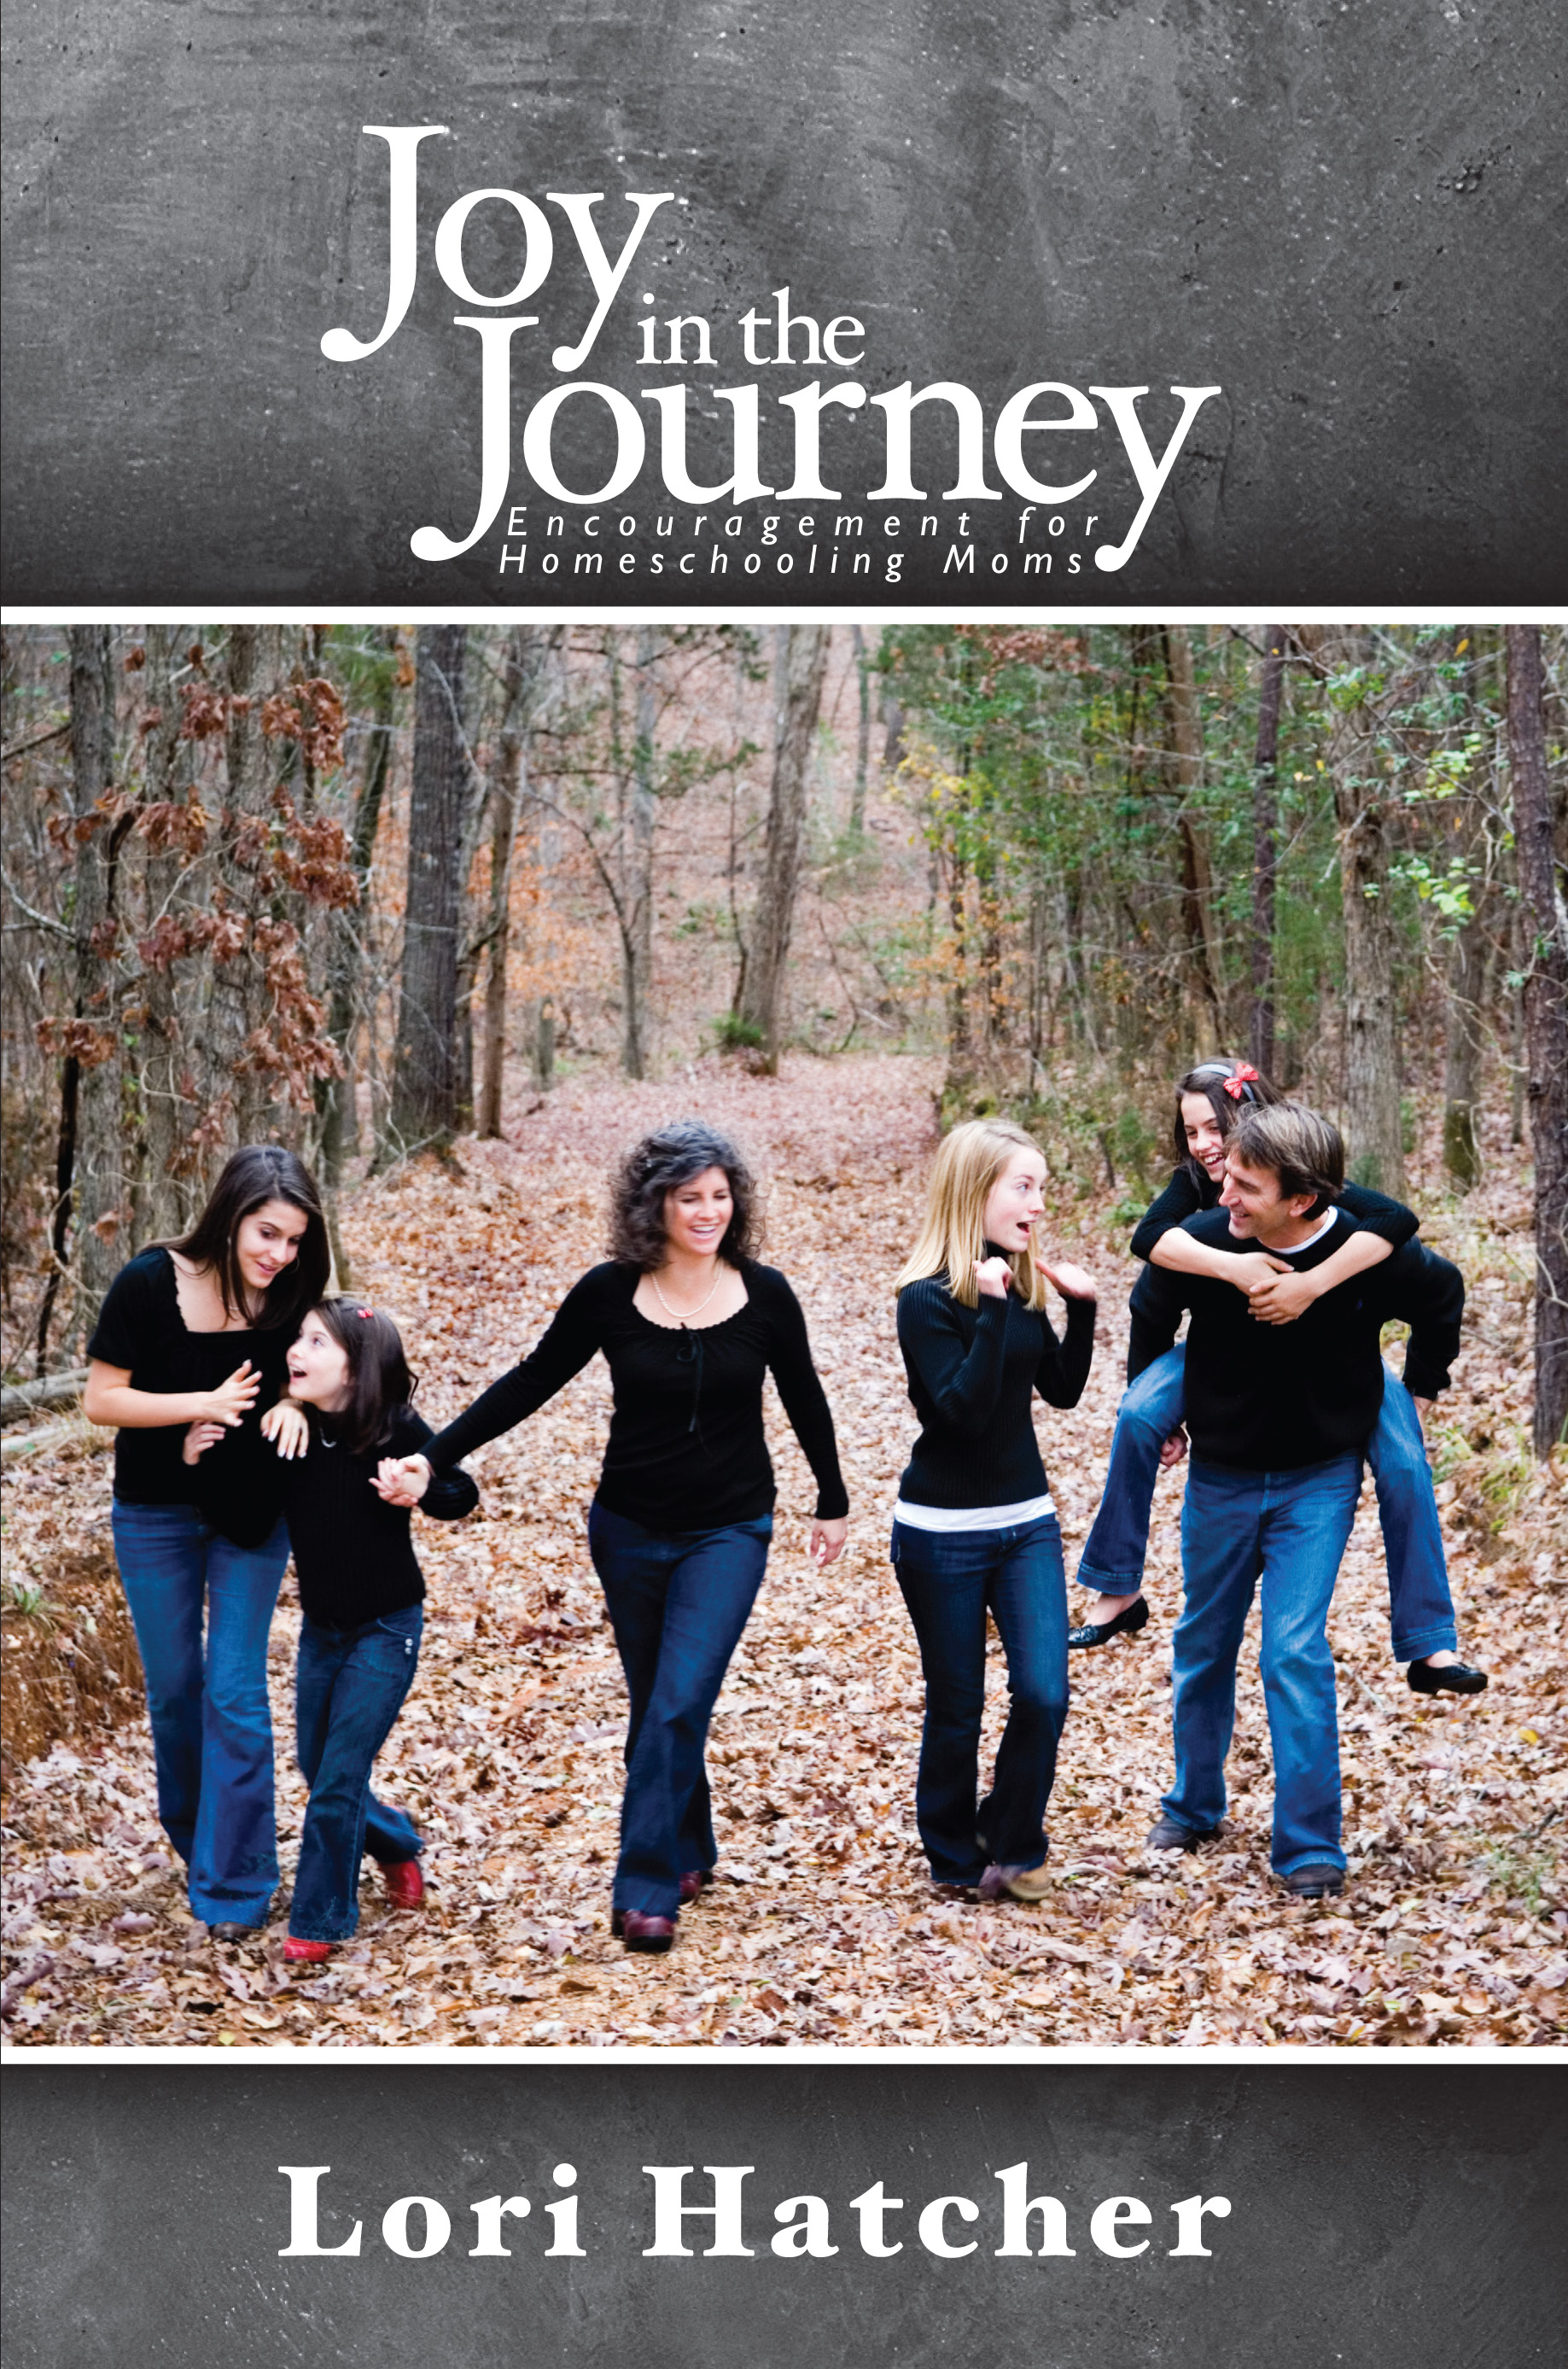 Joy in the Journey by Lori Hatcher {Book Review}